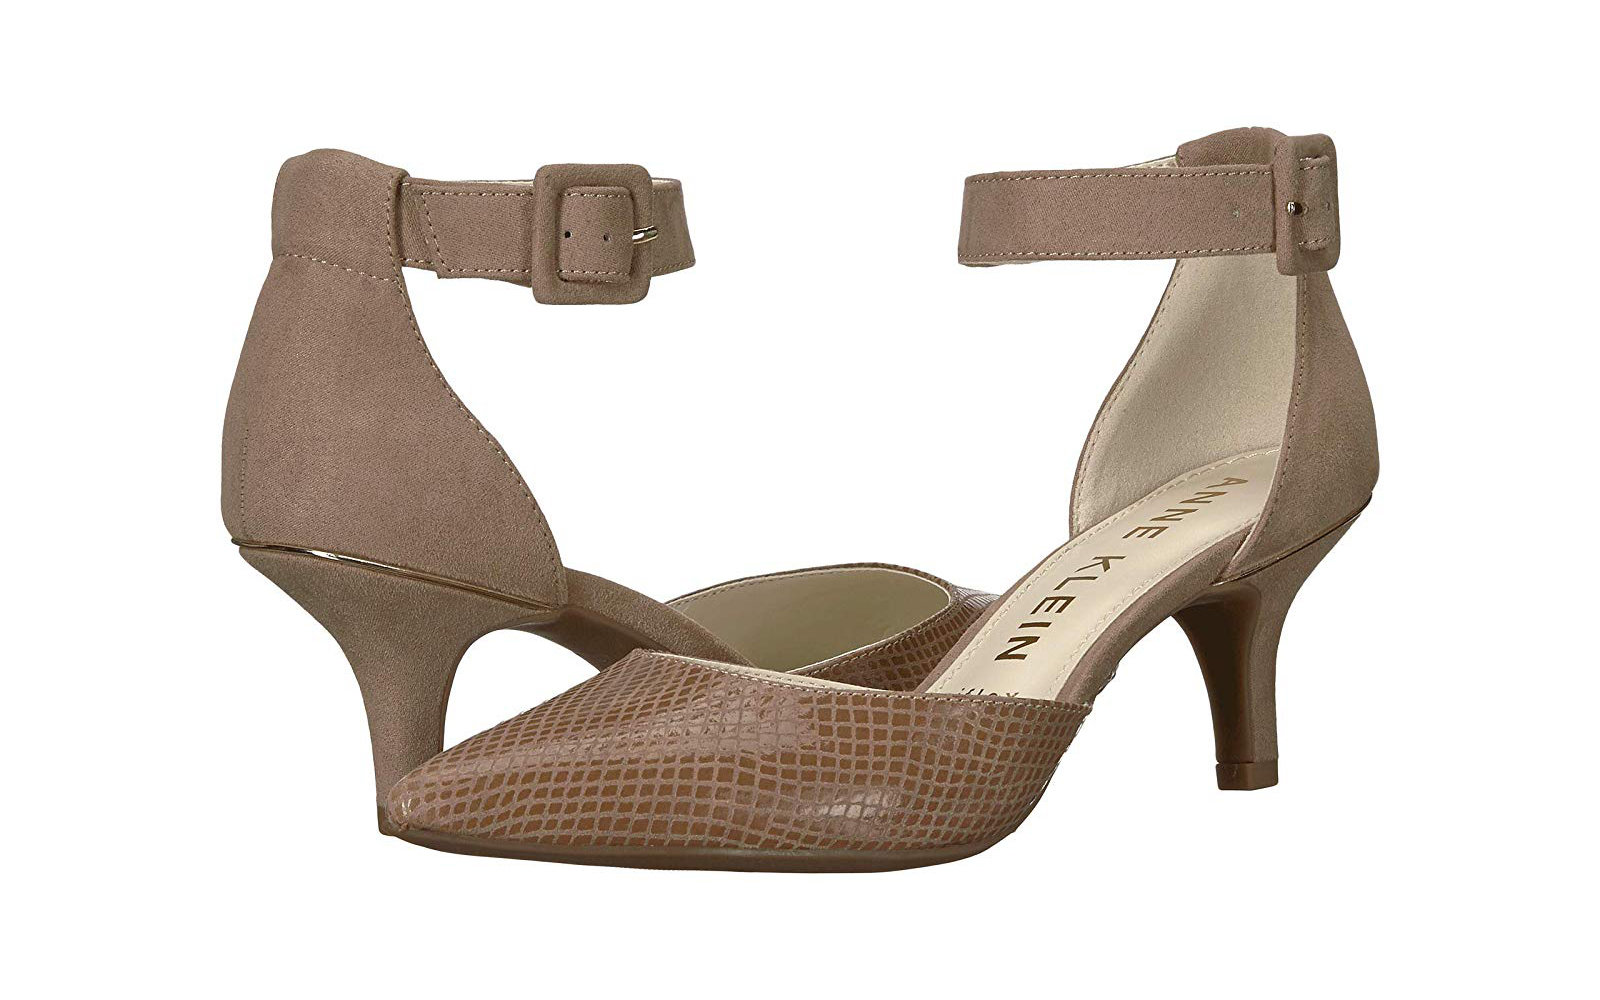 Most Comfortable Ankle-Strap Pump: Anne Klein Fabulist Heels